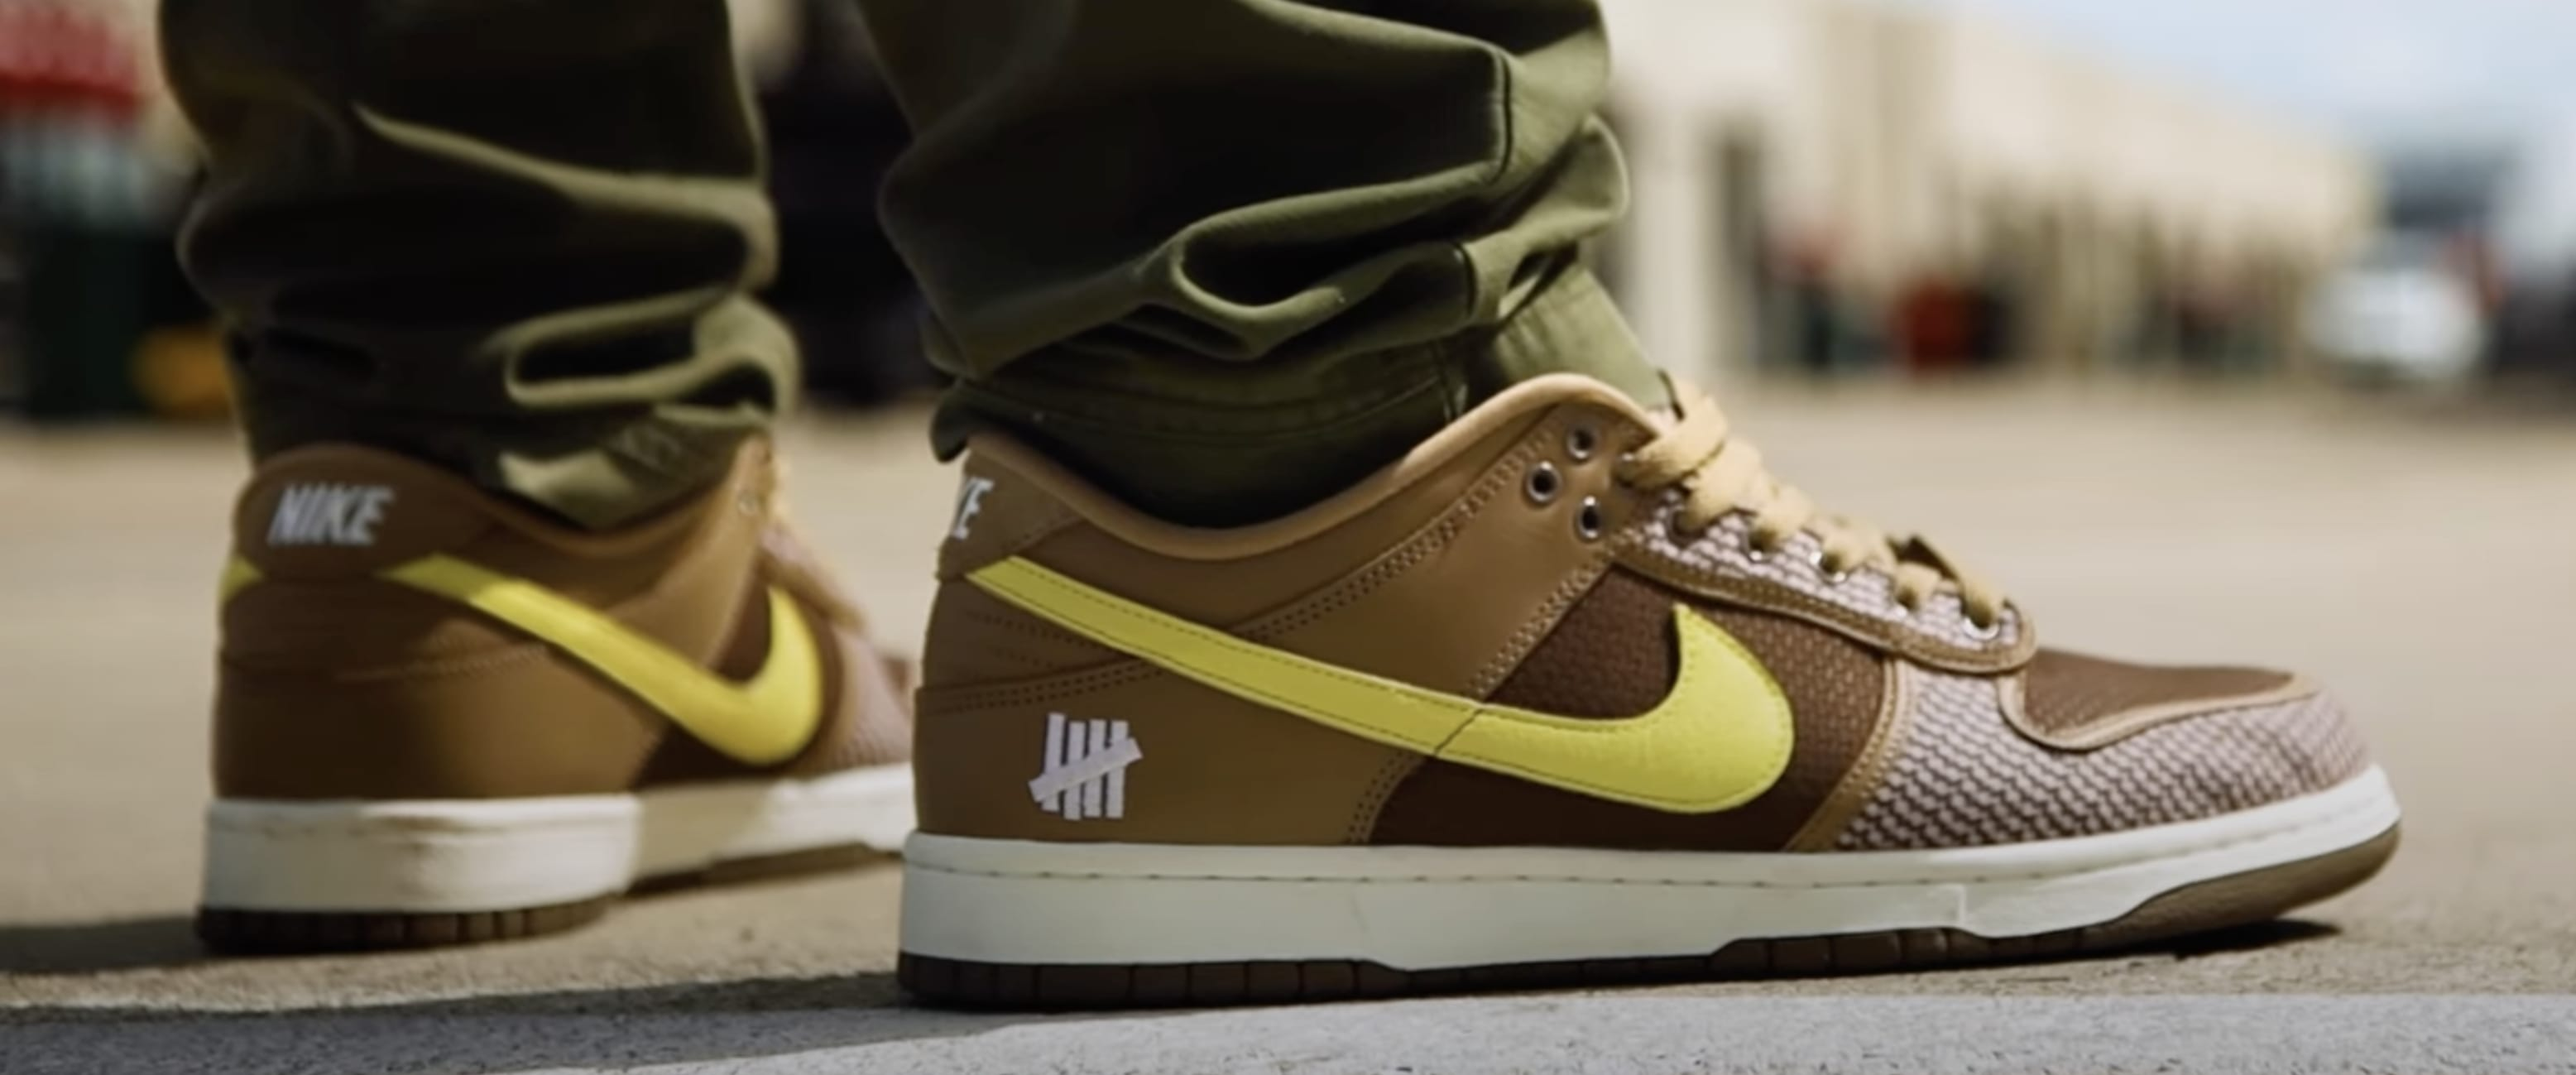 Undefeated x Nike Dunk Low Lateral